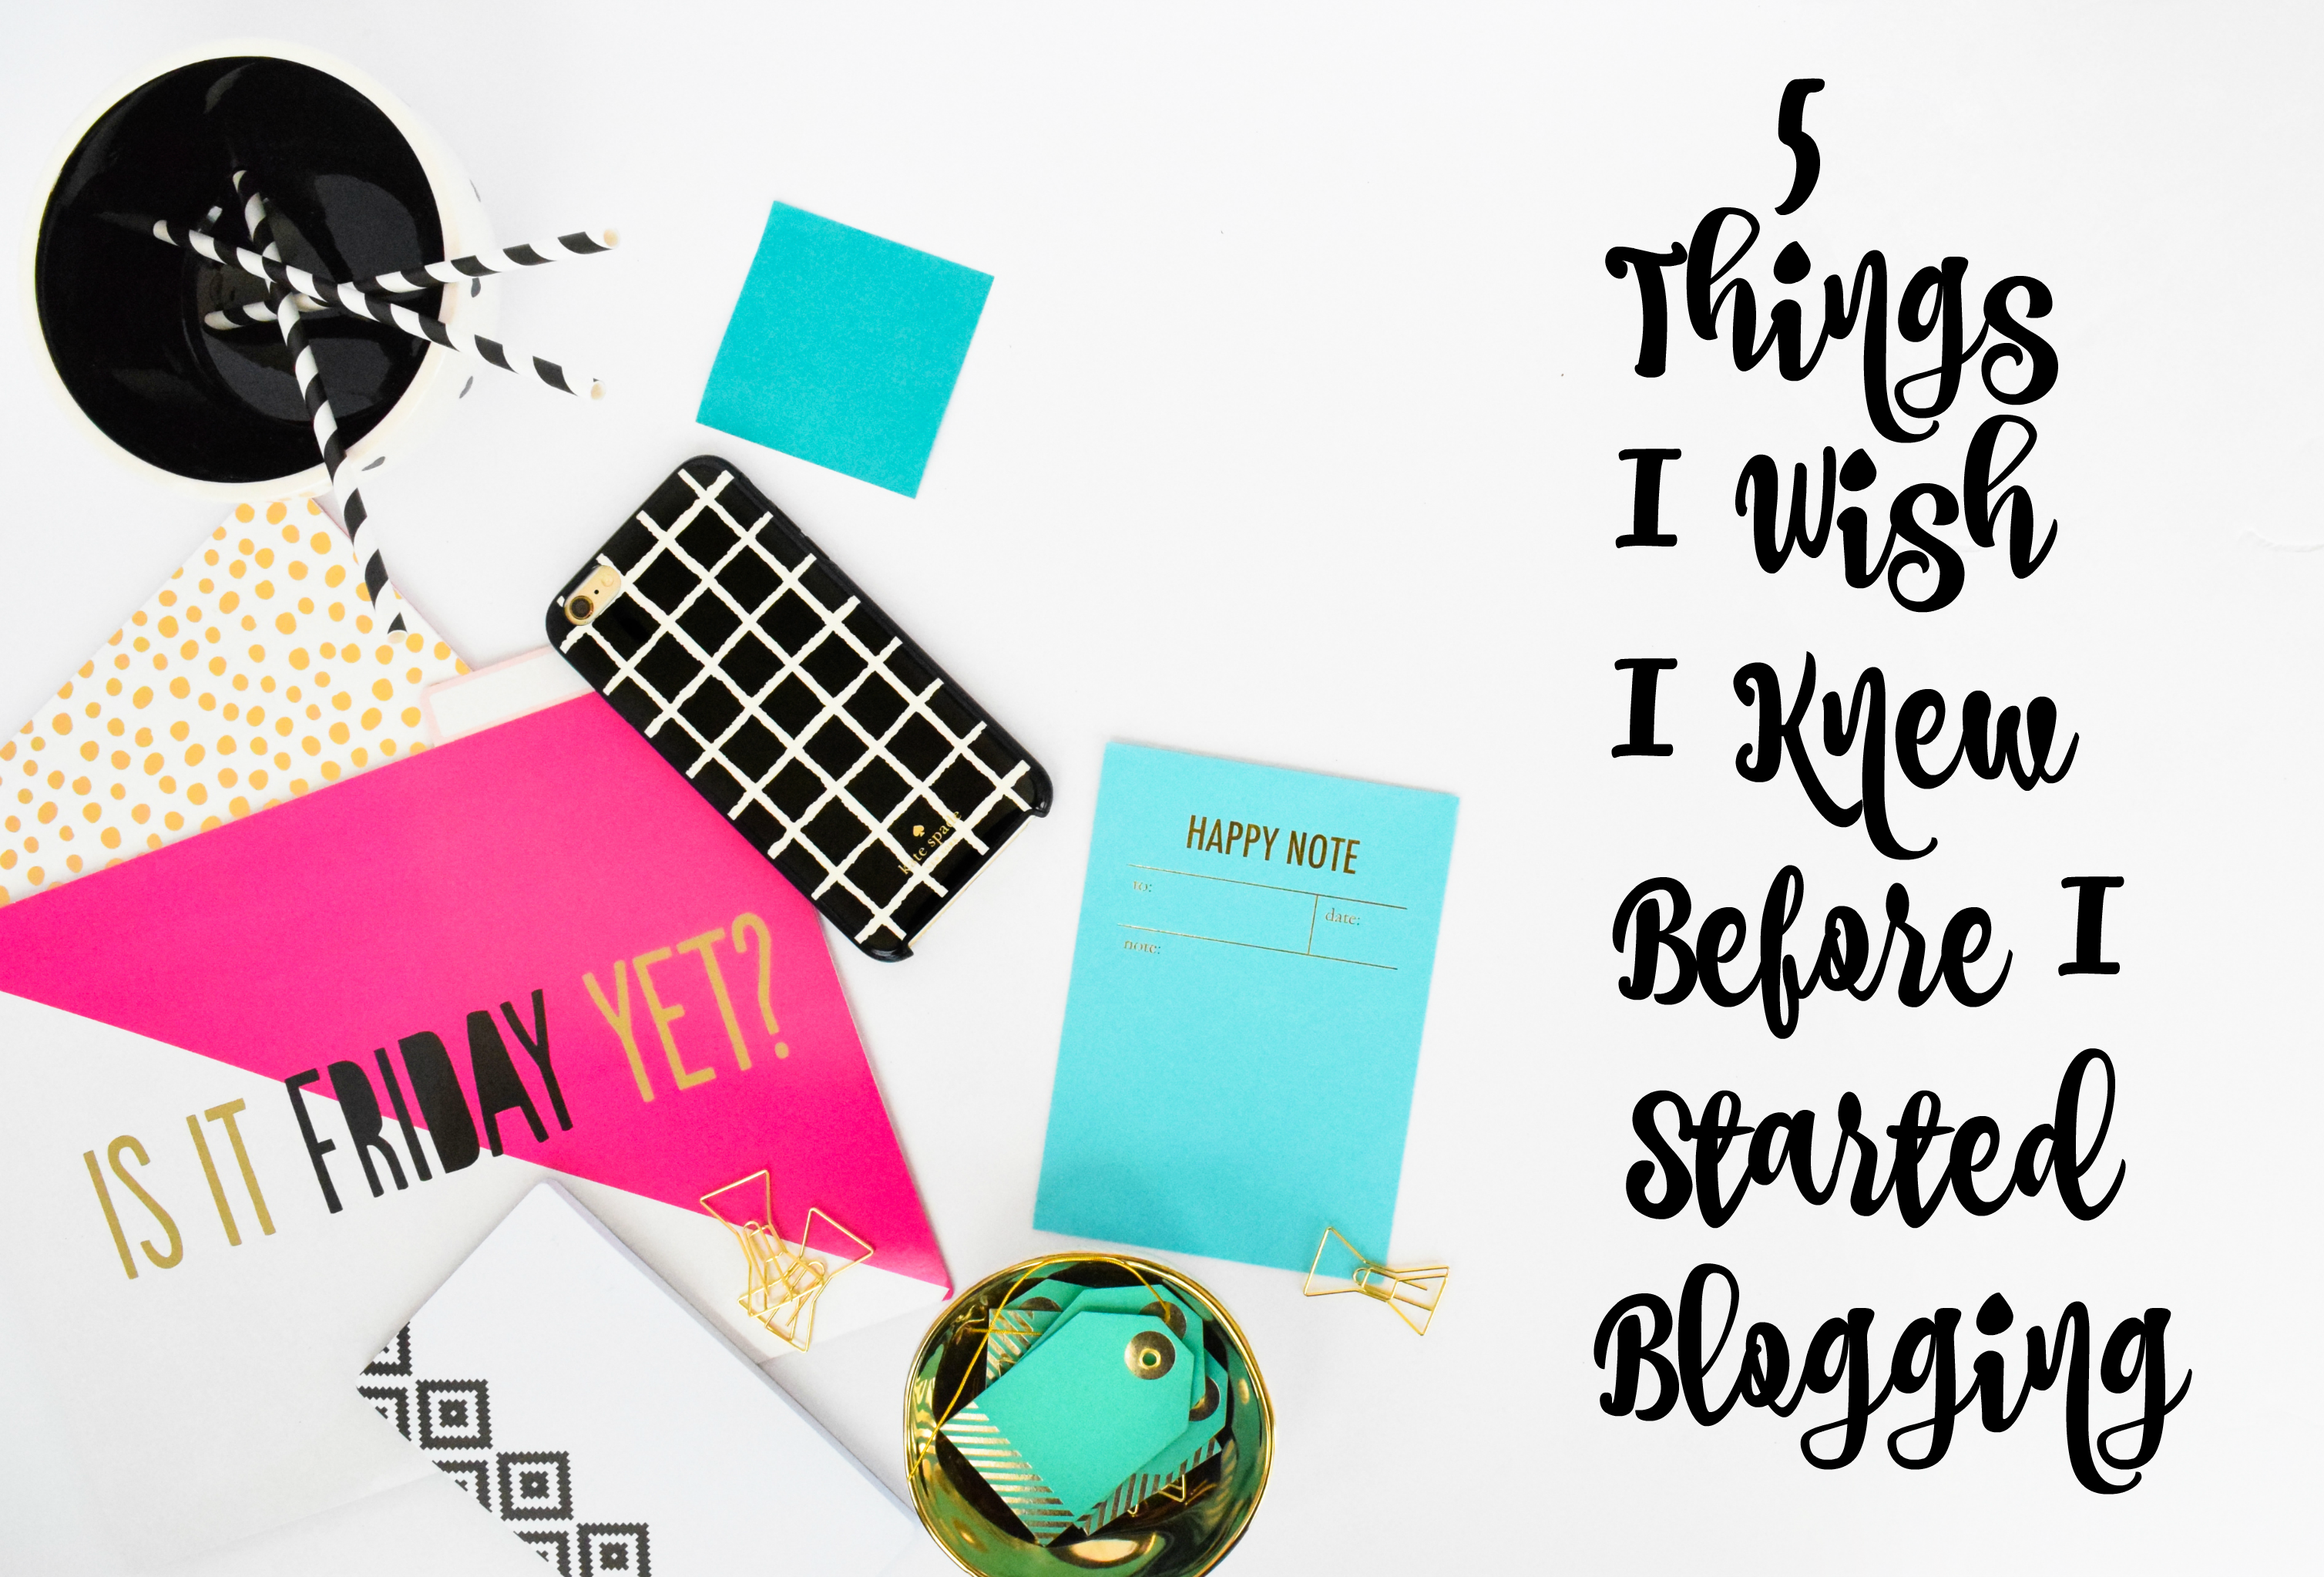 5 Things I Wish I Knew Before I Started Blogging